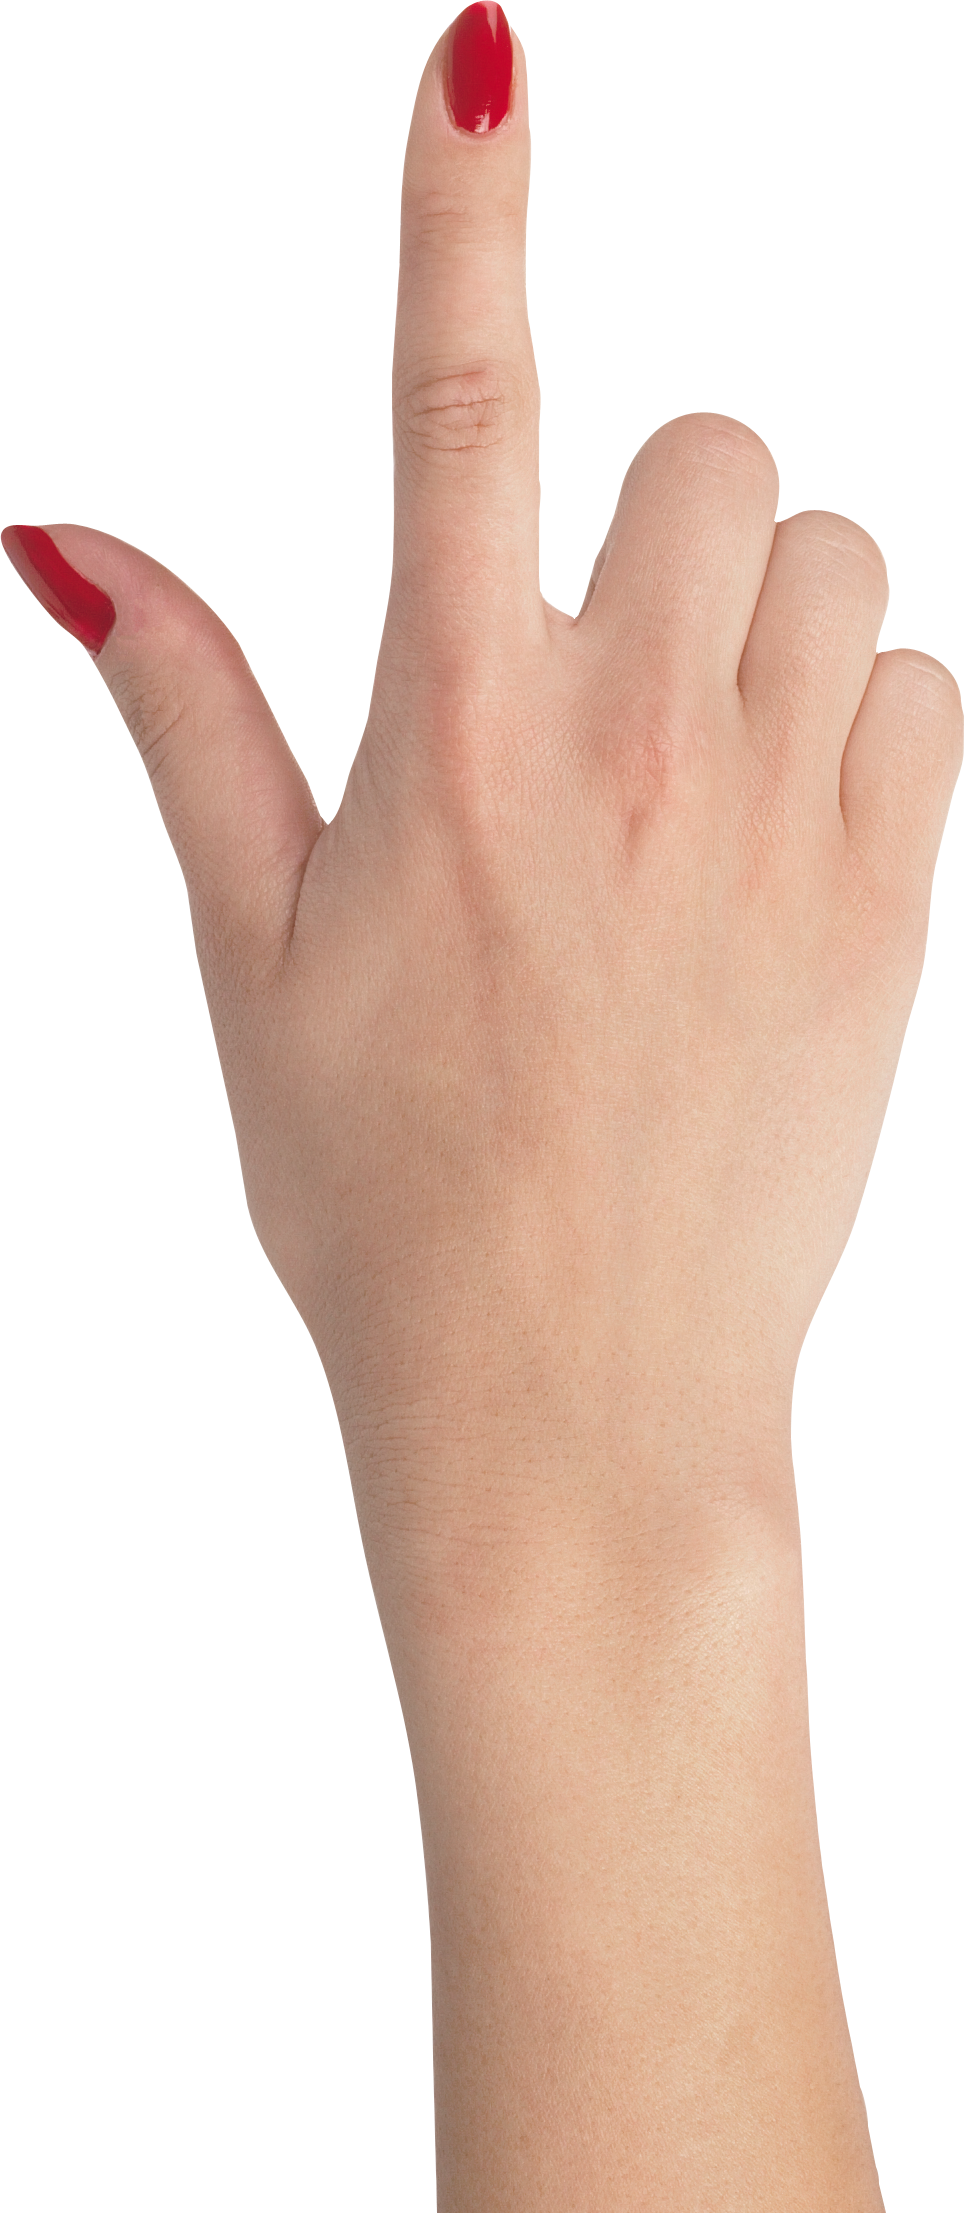 svg black and white stock Manicure clipart lady hand. Female pointing up real.